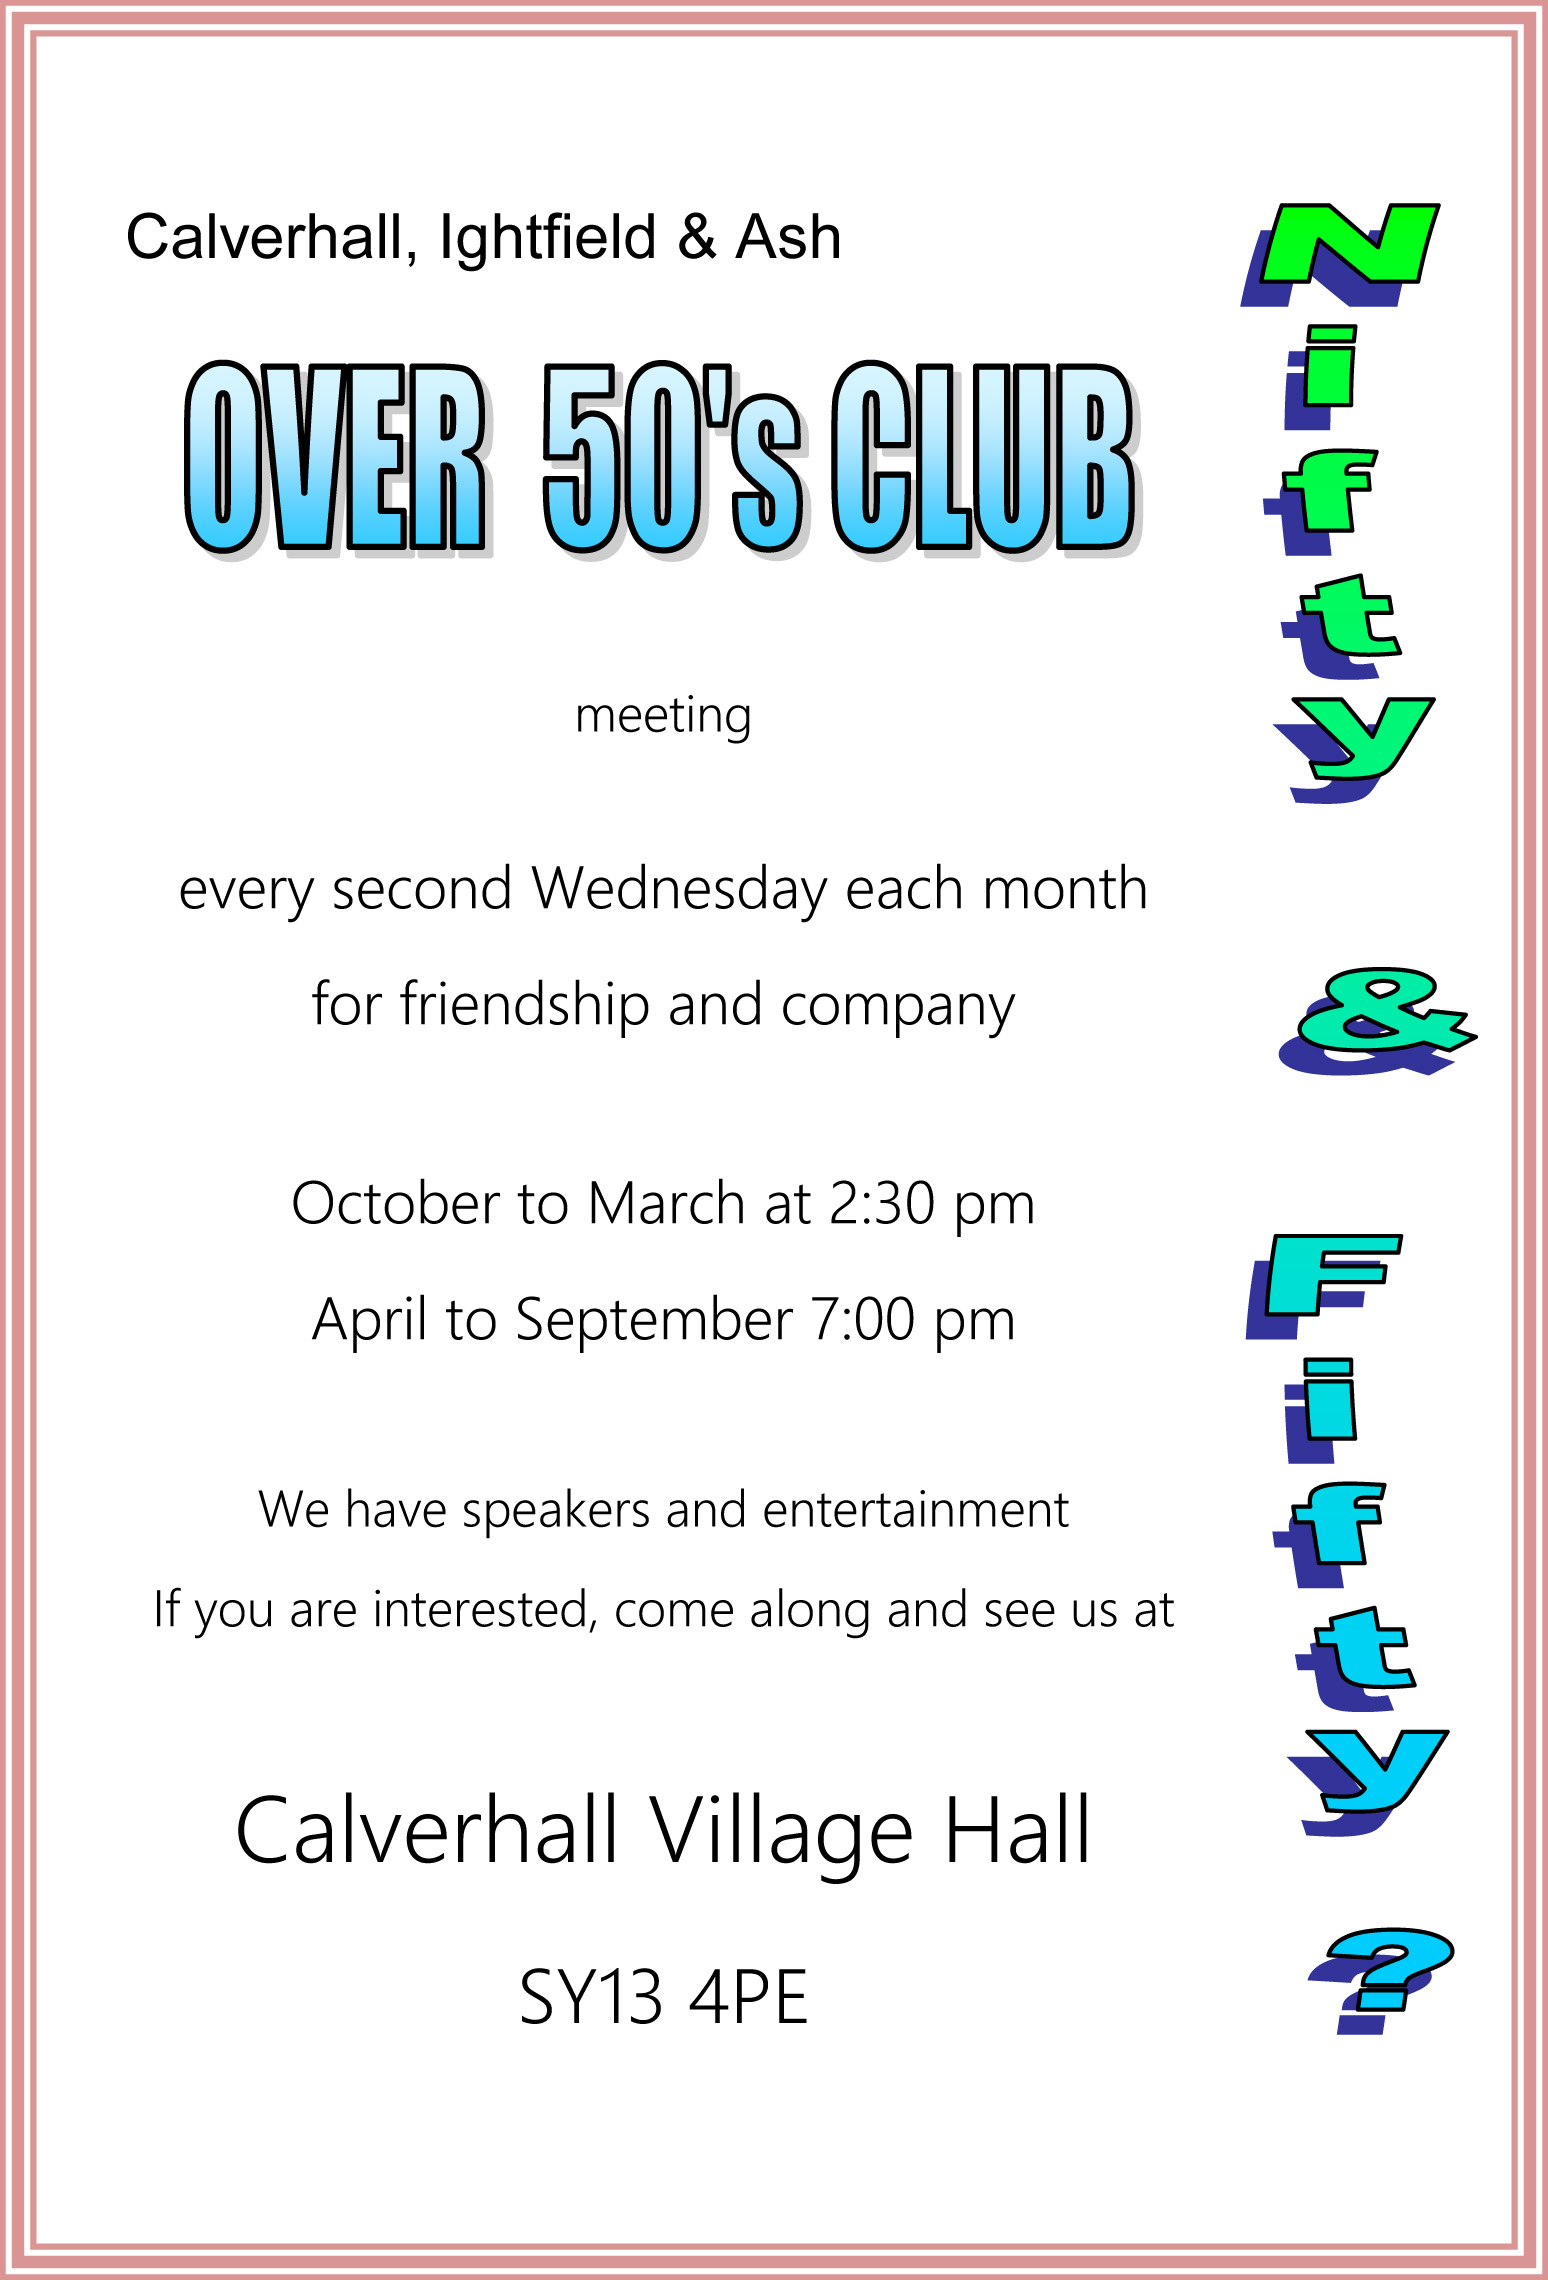 Over fifty club